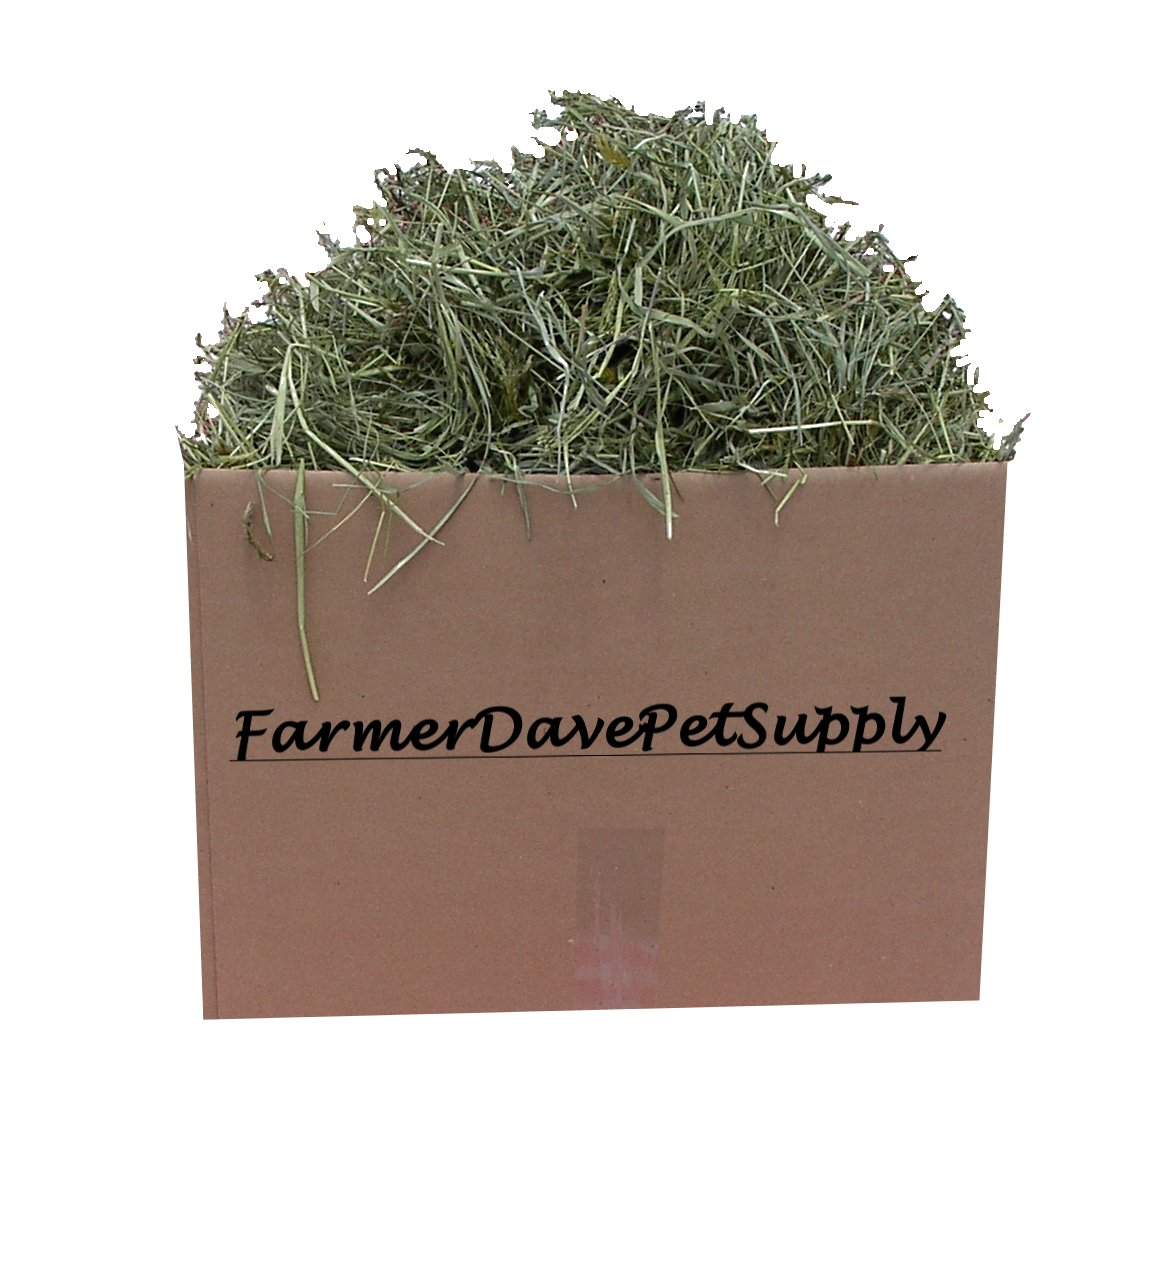 FarmerDavePetSupply 10 Lb Spring Medley Hay, Rabbit and Bunny Hay by FarmerDavePetSupply